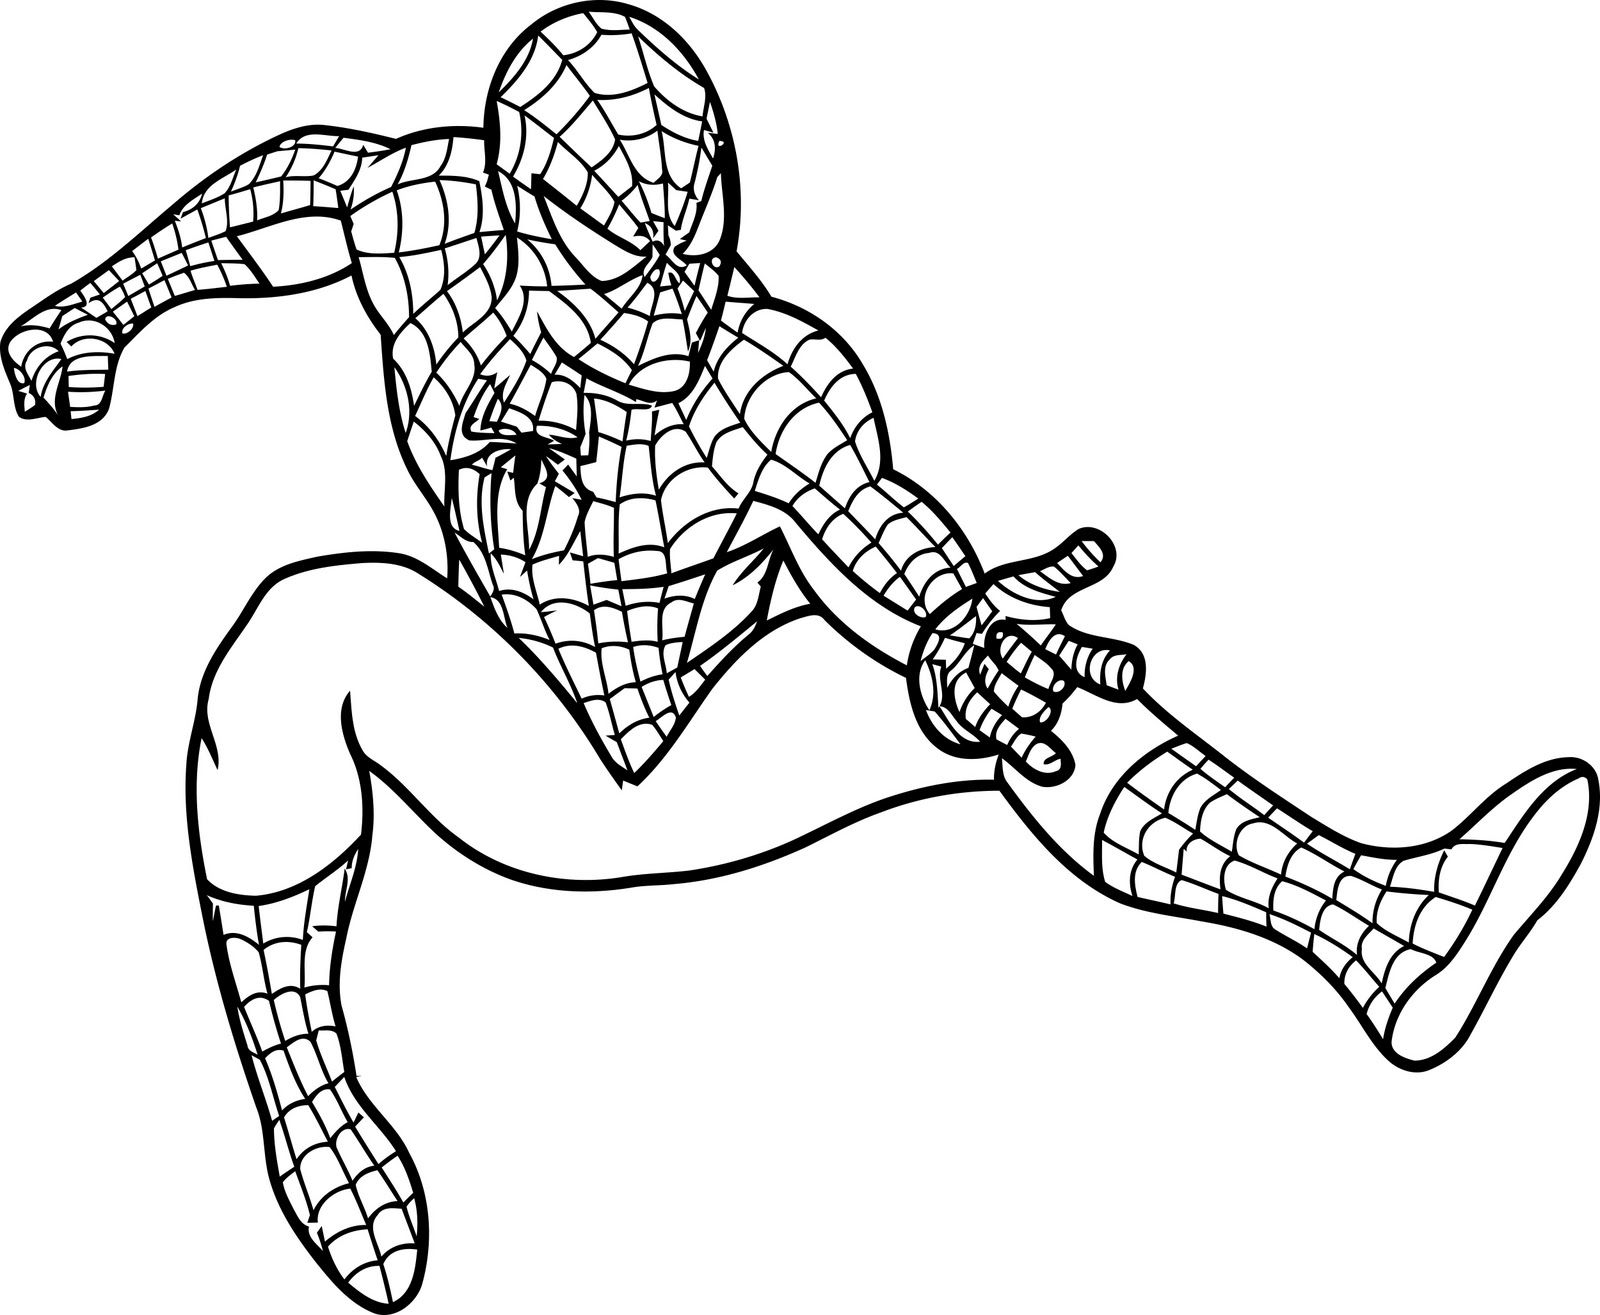 spiderman coloring pages free | Spiderman Coloring Pages For Kids ...